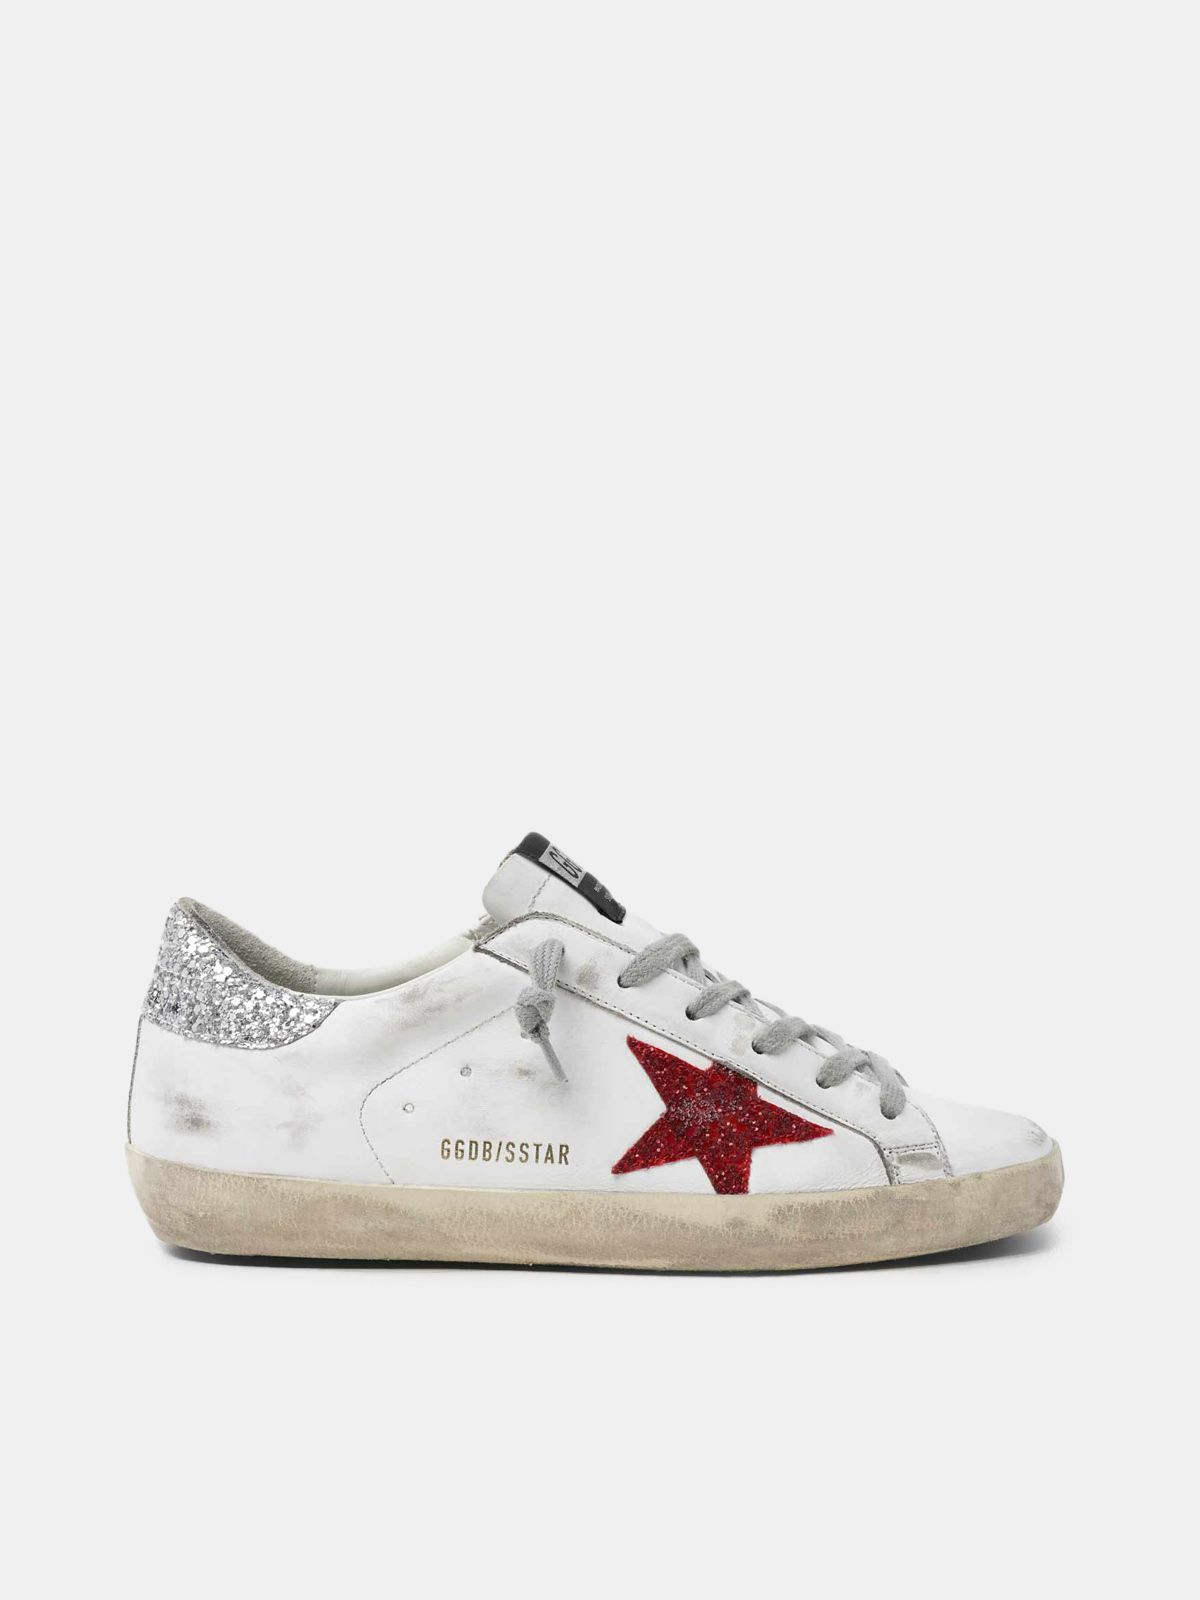 White Super-Star sneakers in leather with glittery red star